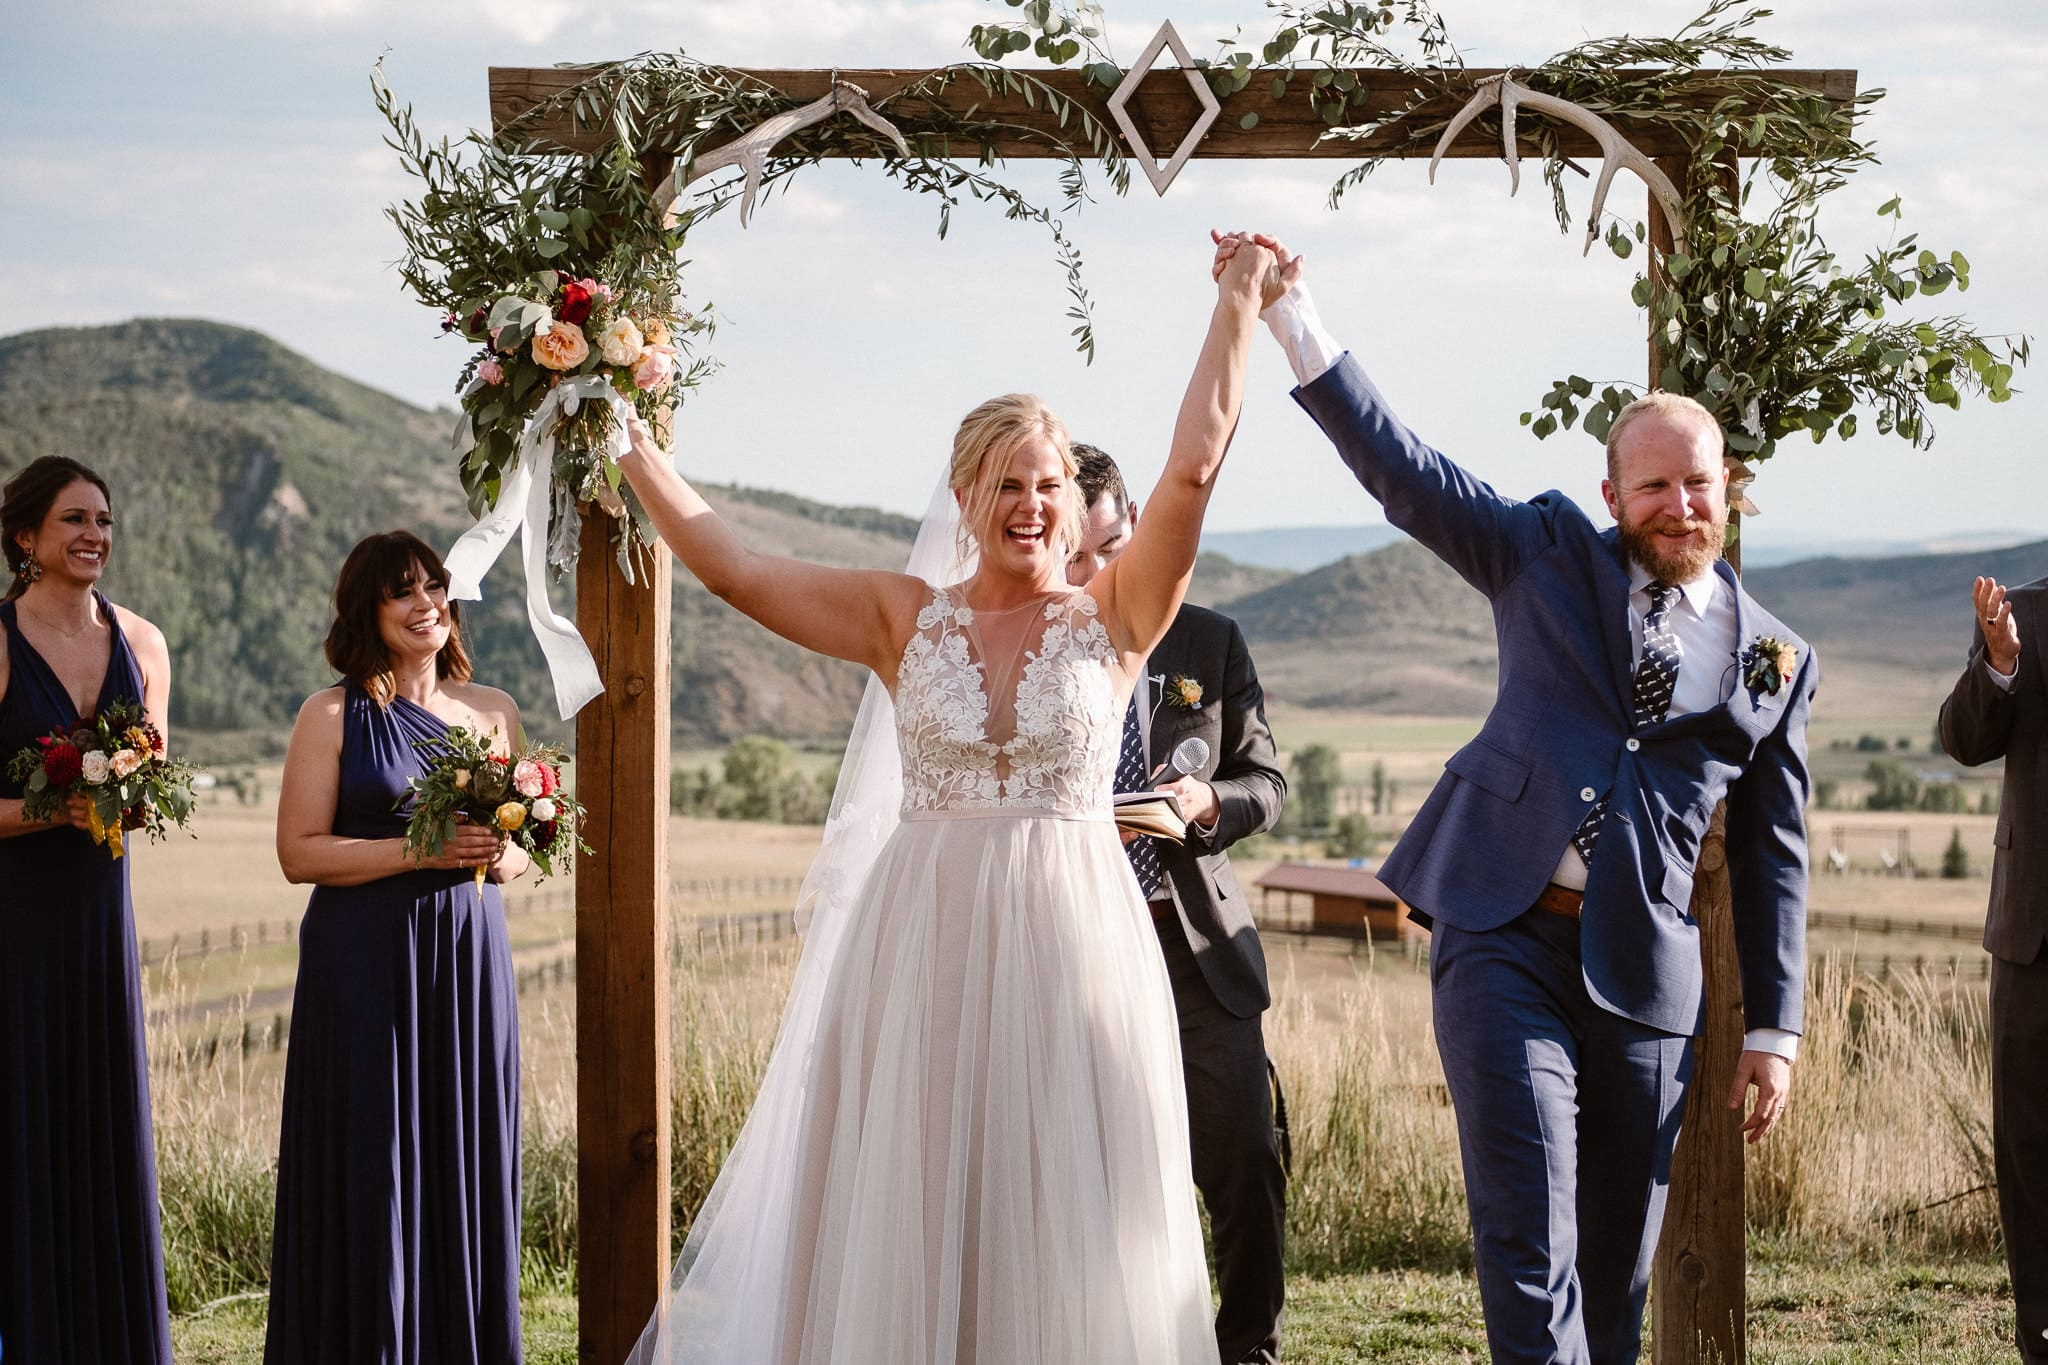 Steamboat Springs wedding photographer, La Joya Dulce wedding, Colorado ranch wedding venues, outdoor wedding ceremony, Colorado wedding, Rocky Mountain wedding, ranch wedding, bride and groom celebrating, wedding recessional